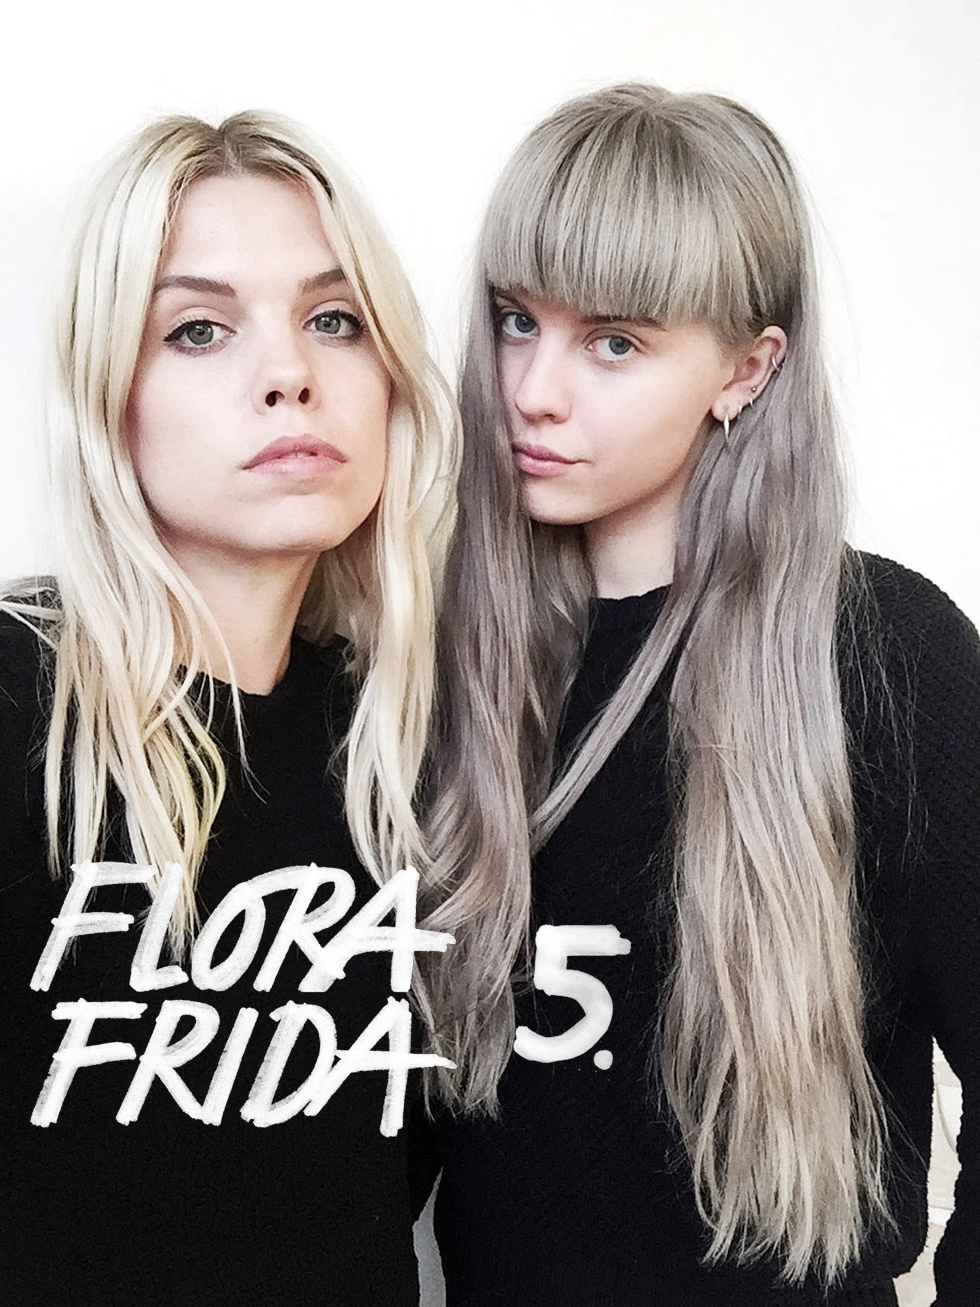 Flora & Frida podcast, 5